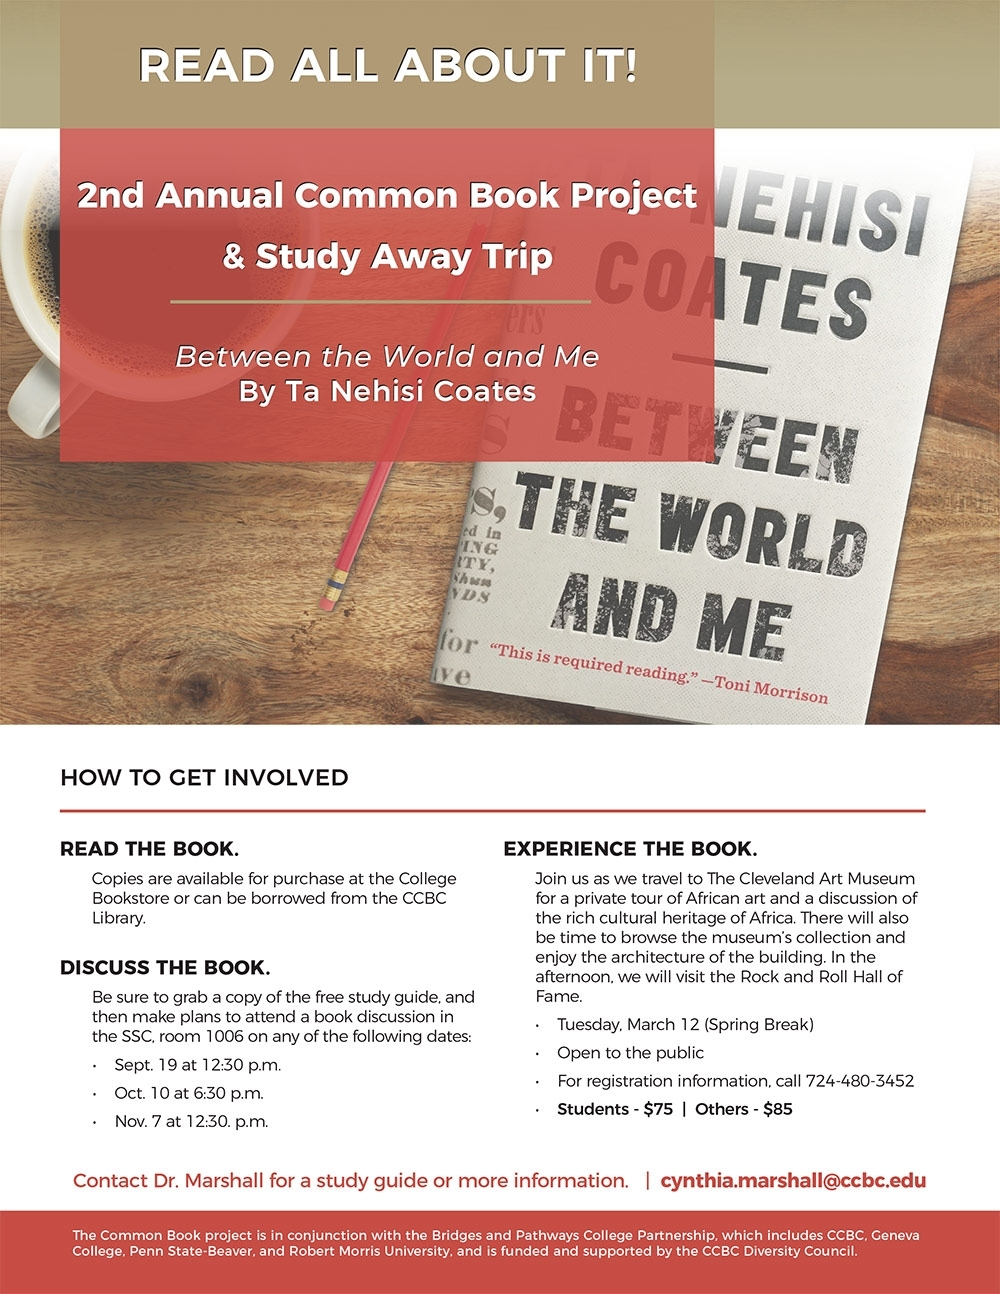 Between the World and Me - By Ta Nehisi CoatesREAD THE BOOK.Copies are available for purchase at the College Bookstore or can be borrowed from the CCBC Library.DISCUSS THE BOOK.Be sure to grab a copy of the free study guide, and then make plans to attend a book discussion in the SSC, room 1006 on any of the following dates:• Sept. 19 at 12:30 p.m.• Oct. 10 at 6:30 p.m.• Nov. 7 at 12:30. p.m.EXPERIENCE THE BOOK.Join us as we travel to The Cleveland Art Museum for a private tour of African art and a discussion of the rich cultural heritage of Africa. There will also be time to browse the museum's collection and enjoy the architecture of the building. In the afternoon, we will visit the Rock and Roll Hall of Fame.• Tuesday, March 12 (Spring Break)• Open to the public• For registration information, call 724-480-3452• Students - $75   Others - $85Contact Dr. Marshall for a study guide or more information.   cynthia.marshall@ccbc.edu